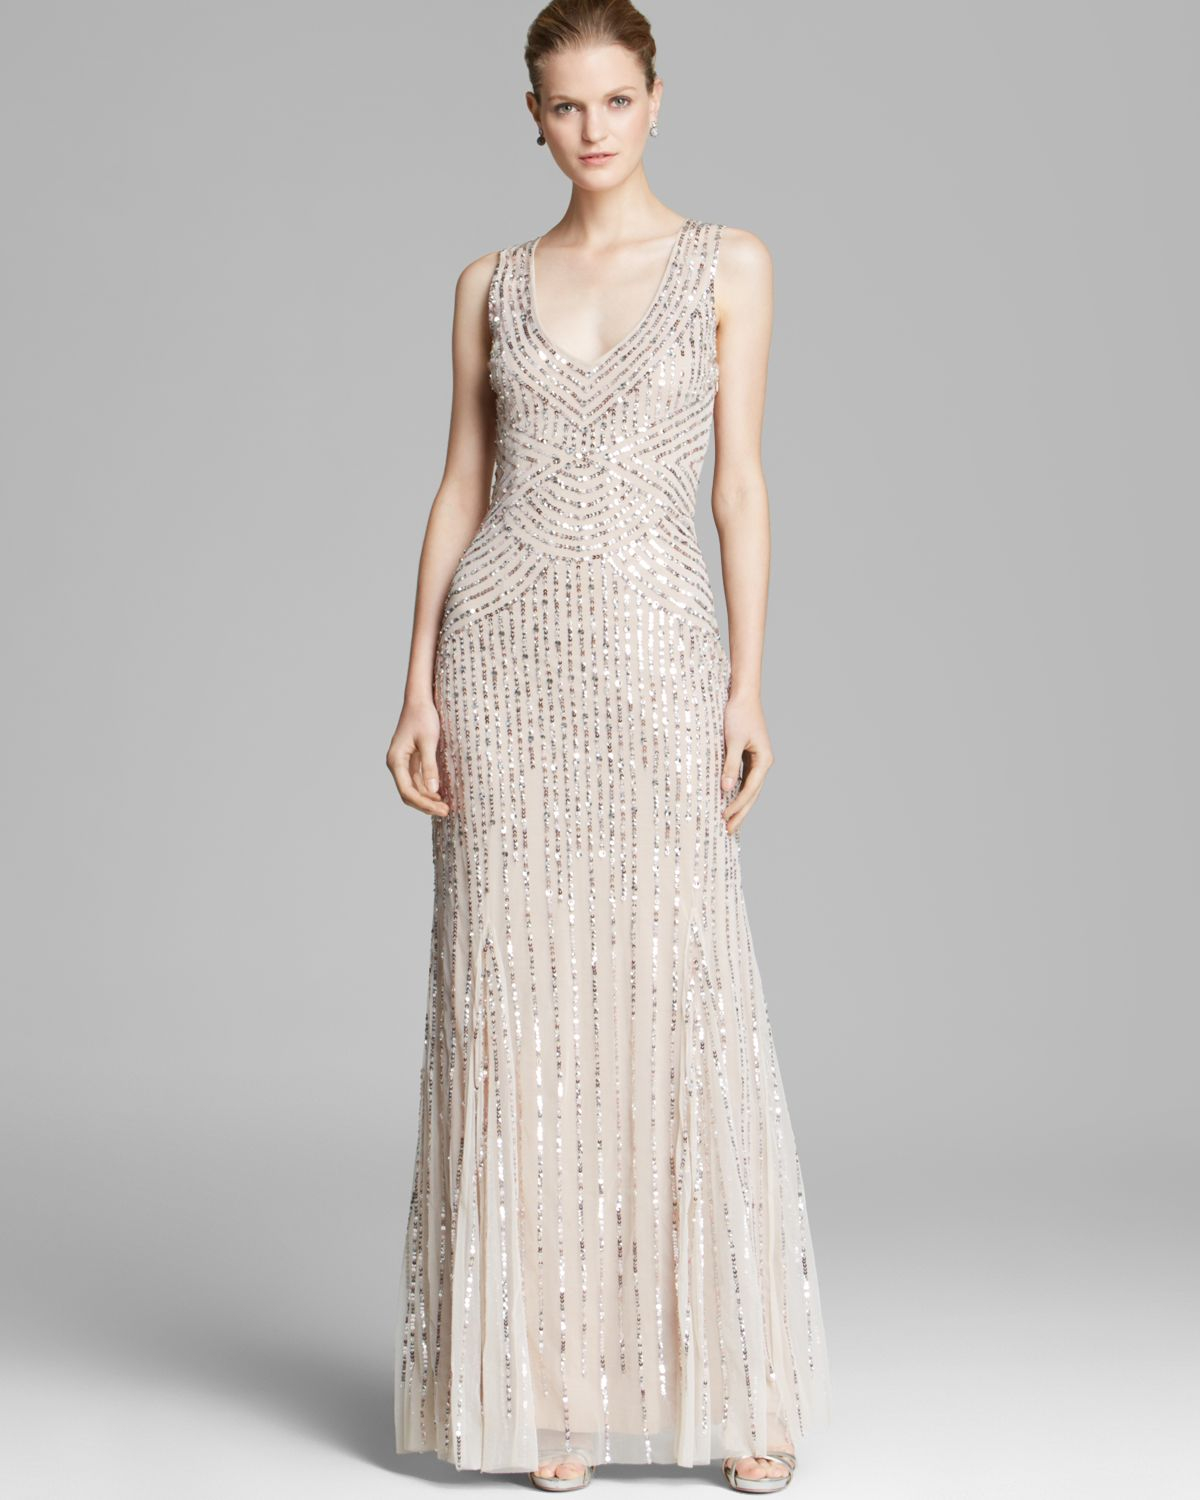 Lyst - Aidan Mattox Sleeveless V-Neck Beaded Gown with Illusion Back ...